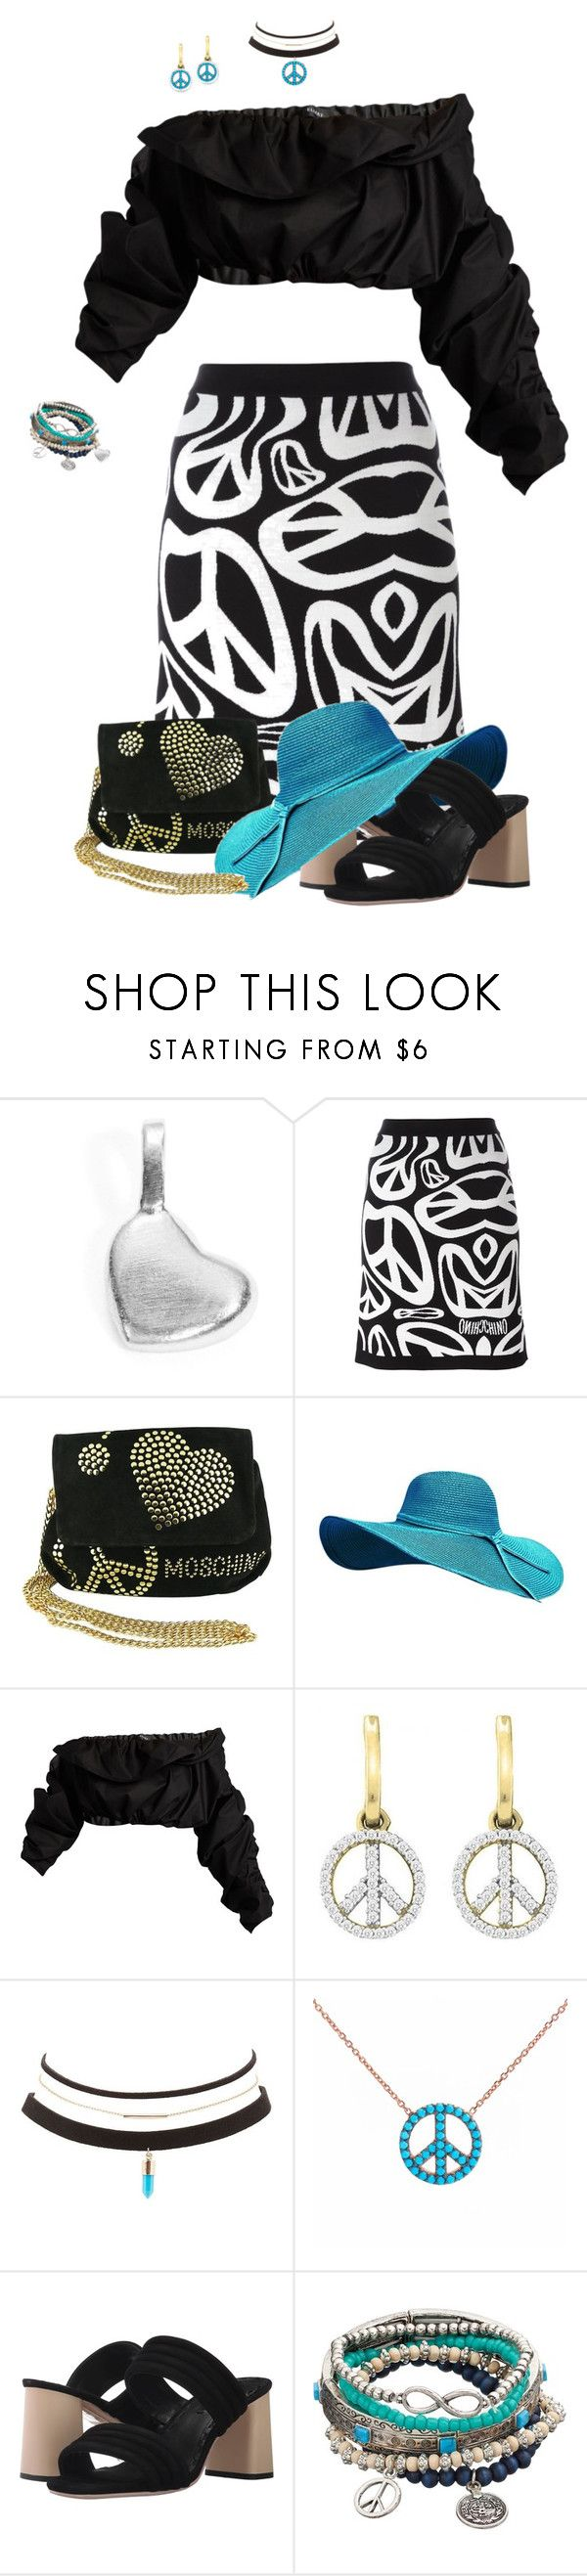 """""""Peace & Love"""" by dkelley-0711 ❤ liked on Polyvore featuring Alex Woo, Moschino, E L L E R Y, Charlotte Russe, Lucky Eyes, Alice + Olivia, Mudd, aliceolivia and polyvoreeditorial"""